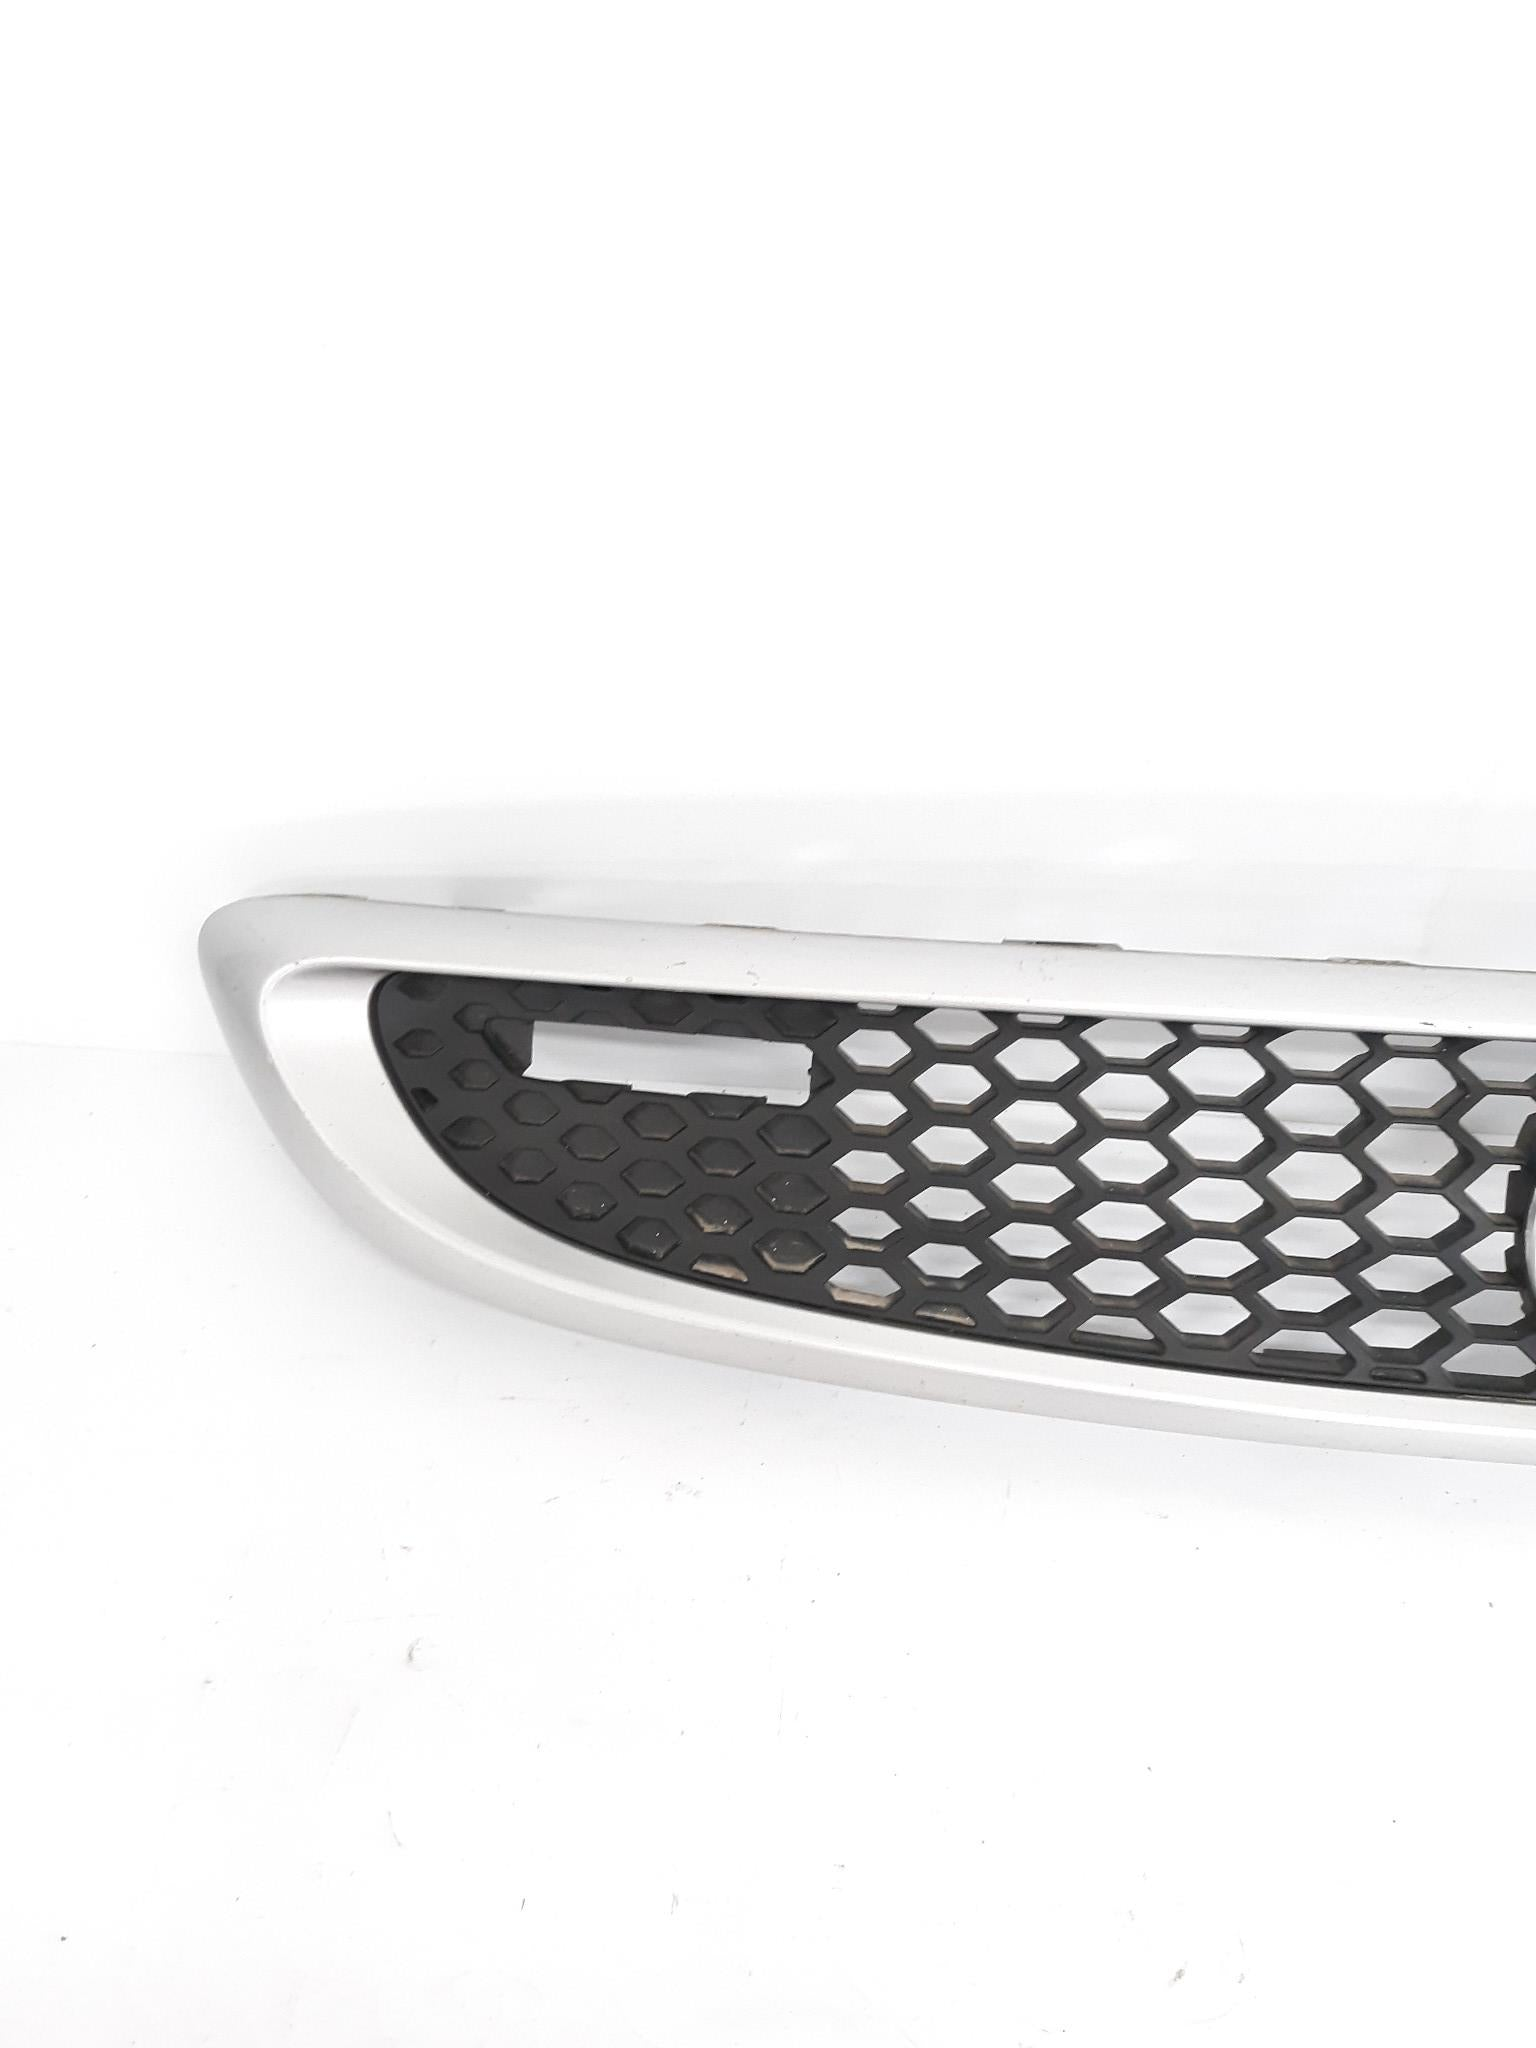 2013 2014 2015 2016 Smart ForTwo Grille Grill w/ Emblem OEM